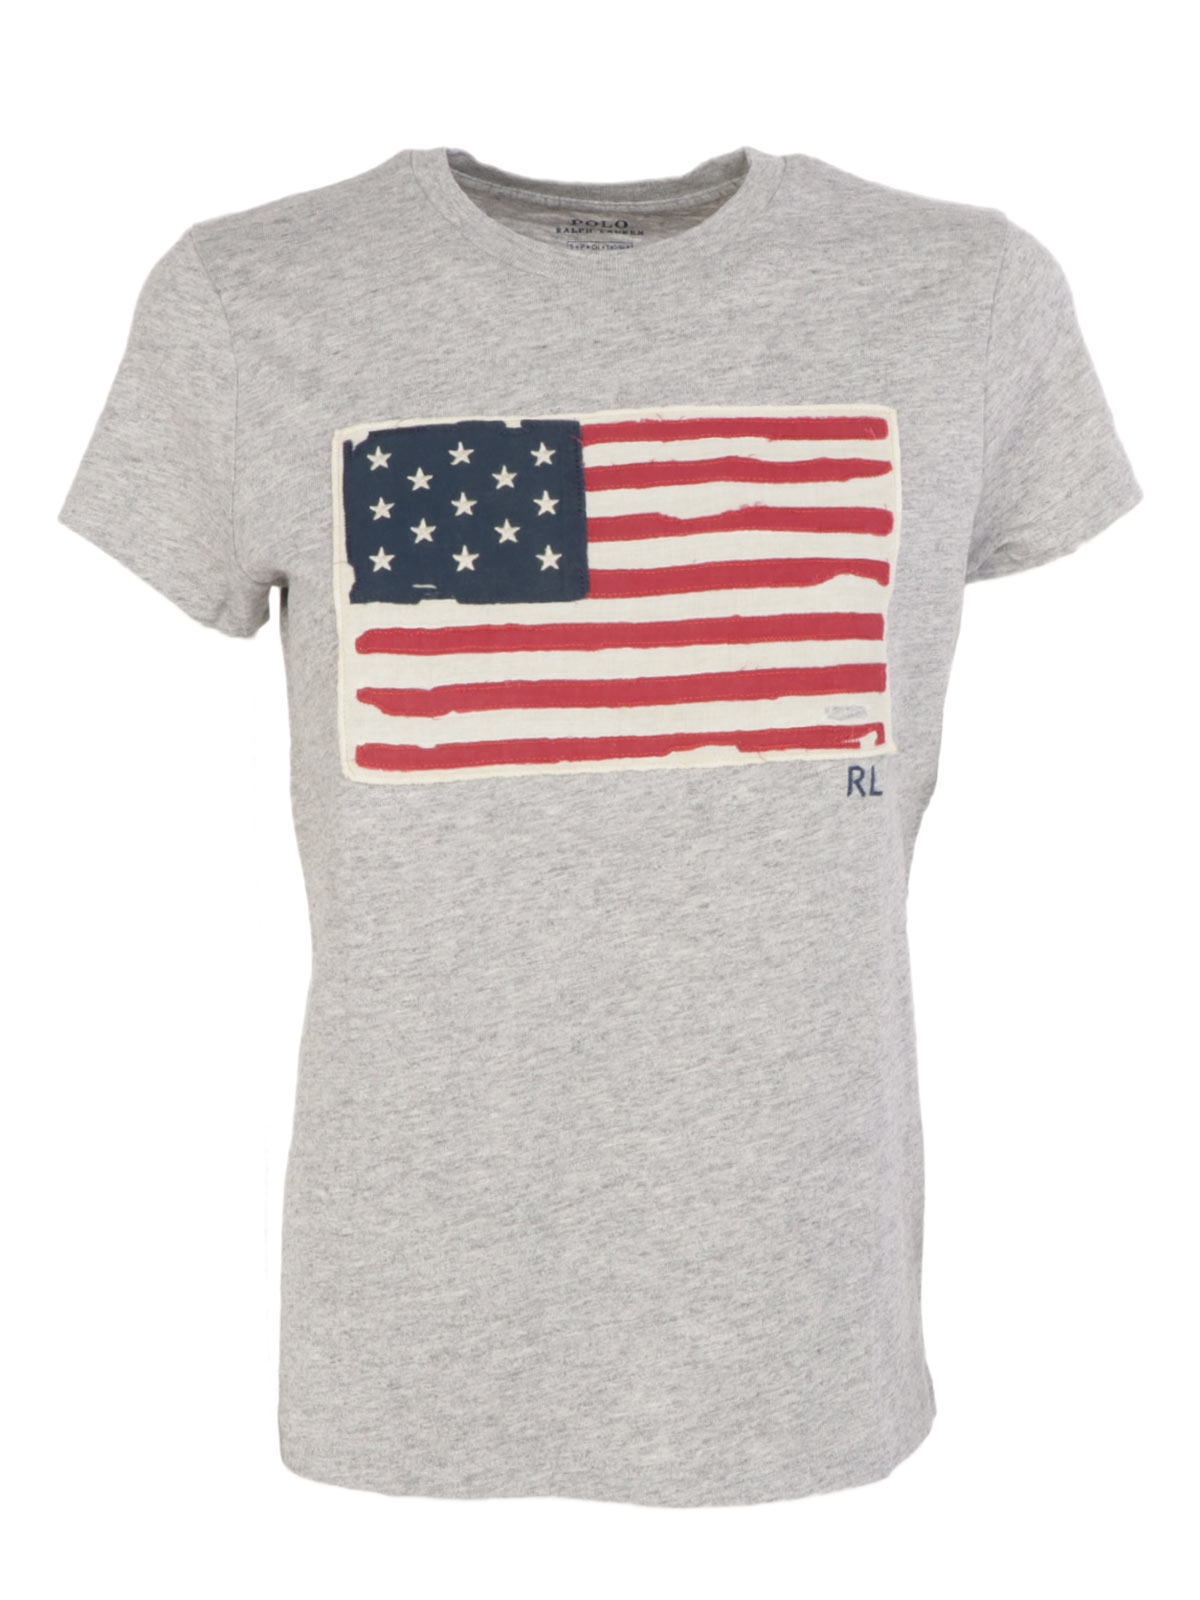 buy online new luxury POLO RALPH LAUREN Women's USA Flag T-Shirt